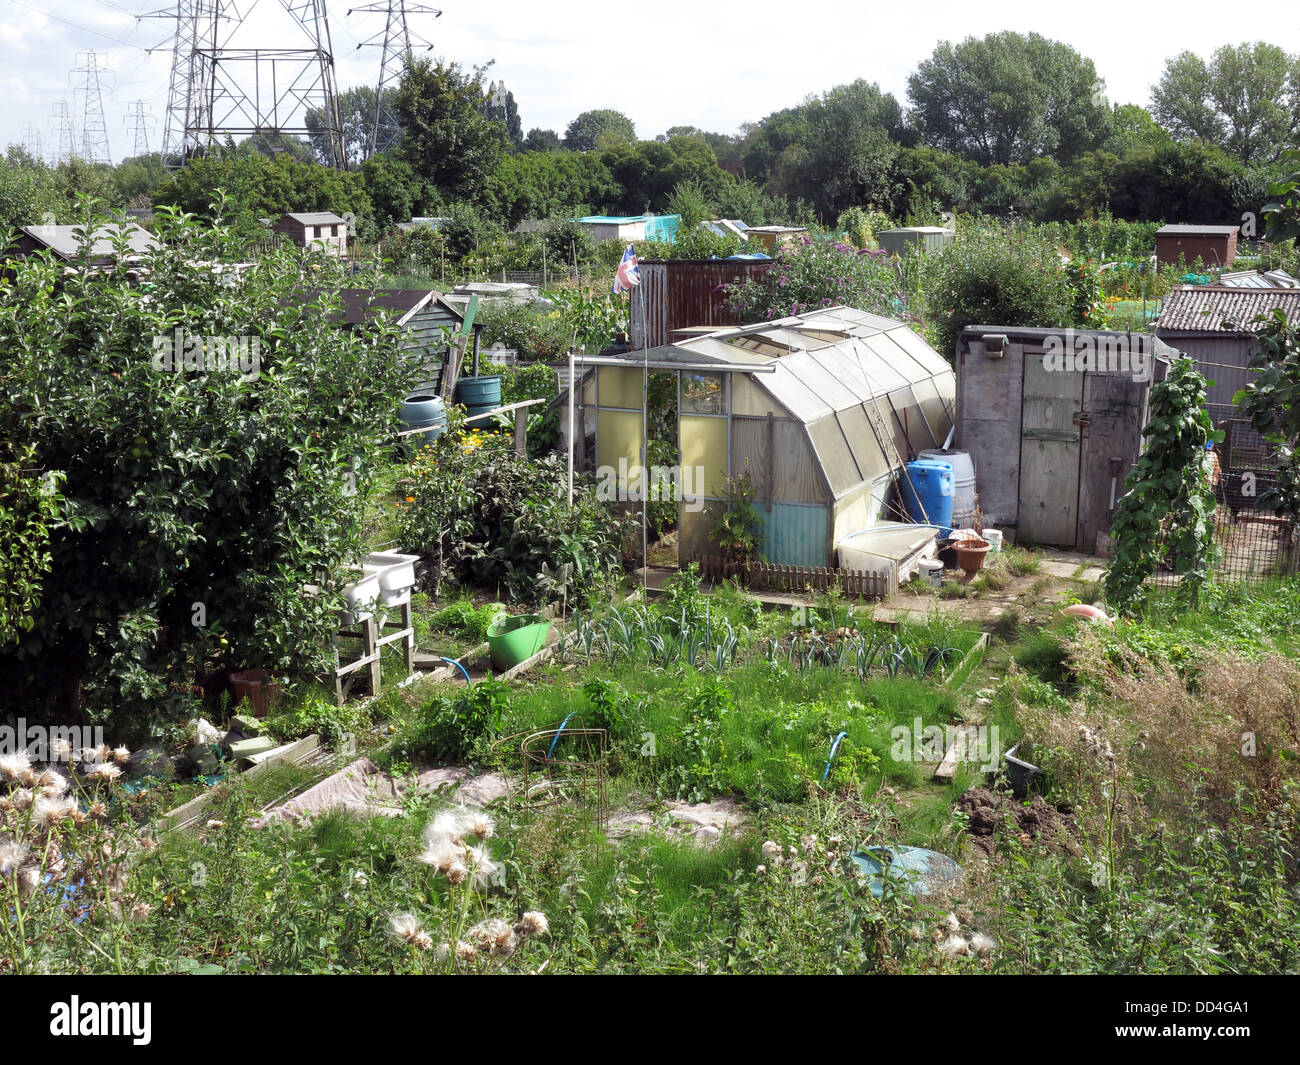 Westy allotments, Kingsway South, Latchford / Westy, Warrington, Cheshire, North West England - Stock Image